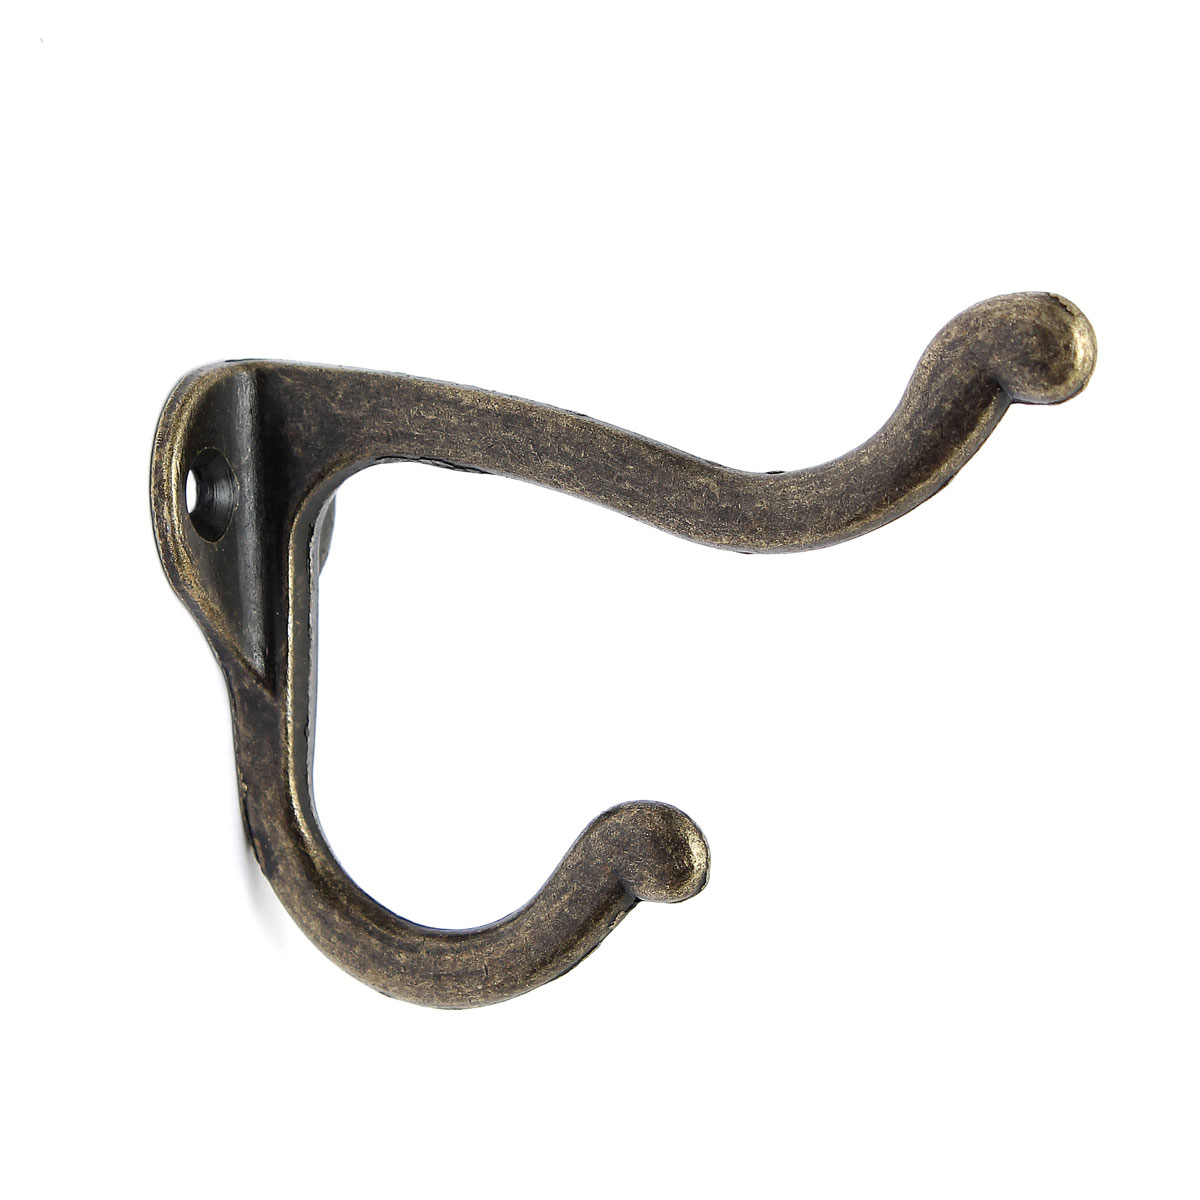 10pcs Vintage Antique Hat Coat Clothes Towel Holder Kitchen Bath Wall Door Hanger Hooks With Screws